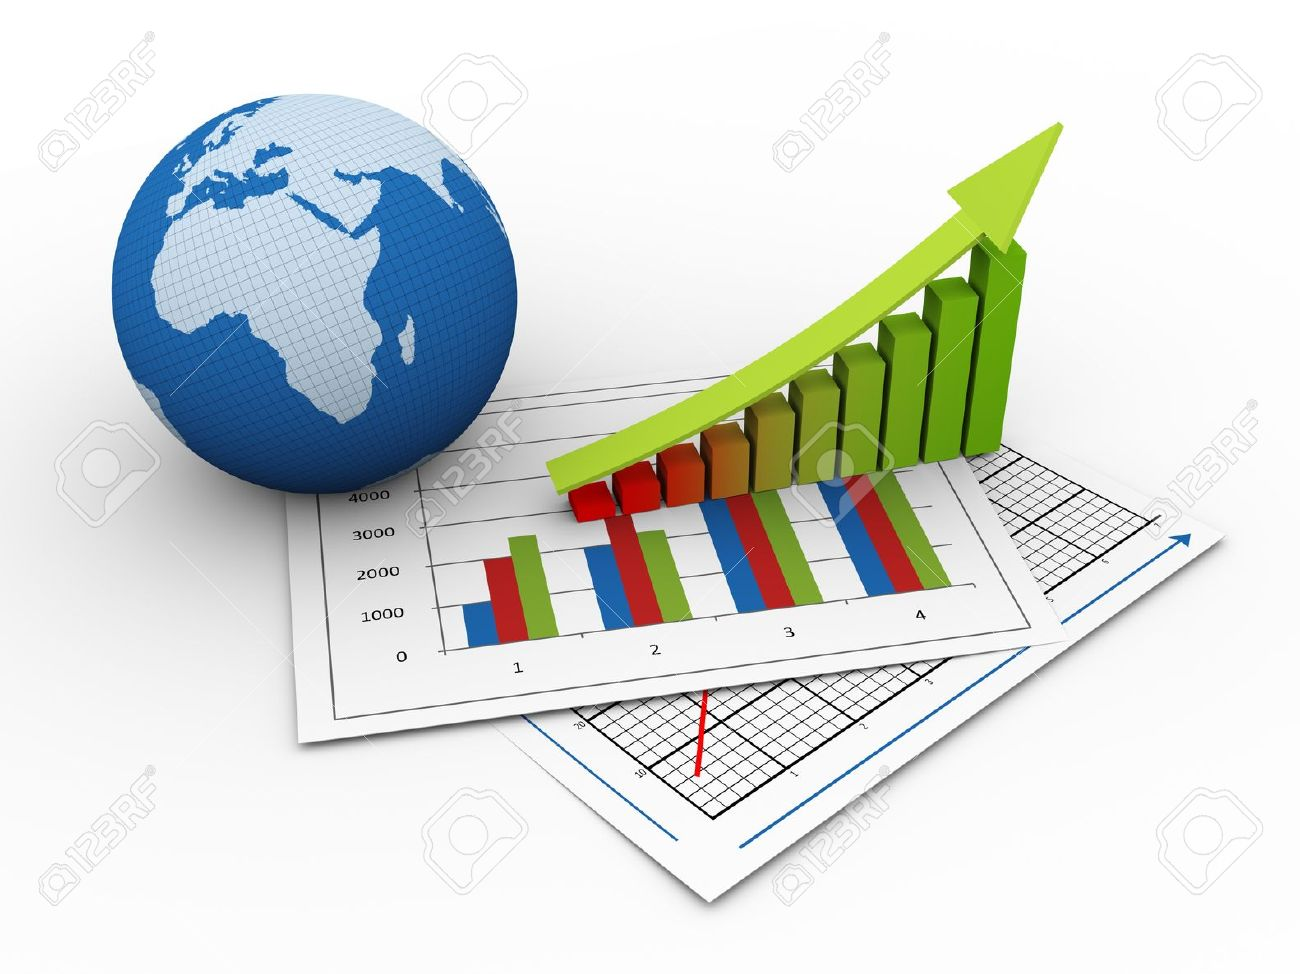 3d render of globe and progress bars on financial paper  concept of global financial growth Stock Photo - 13278546